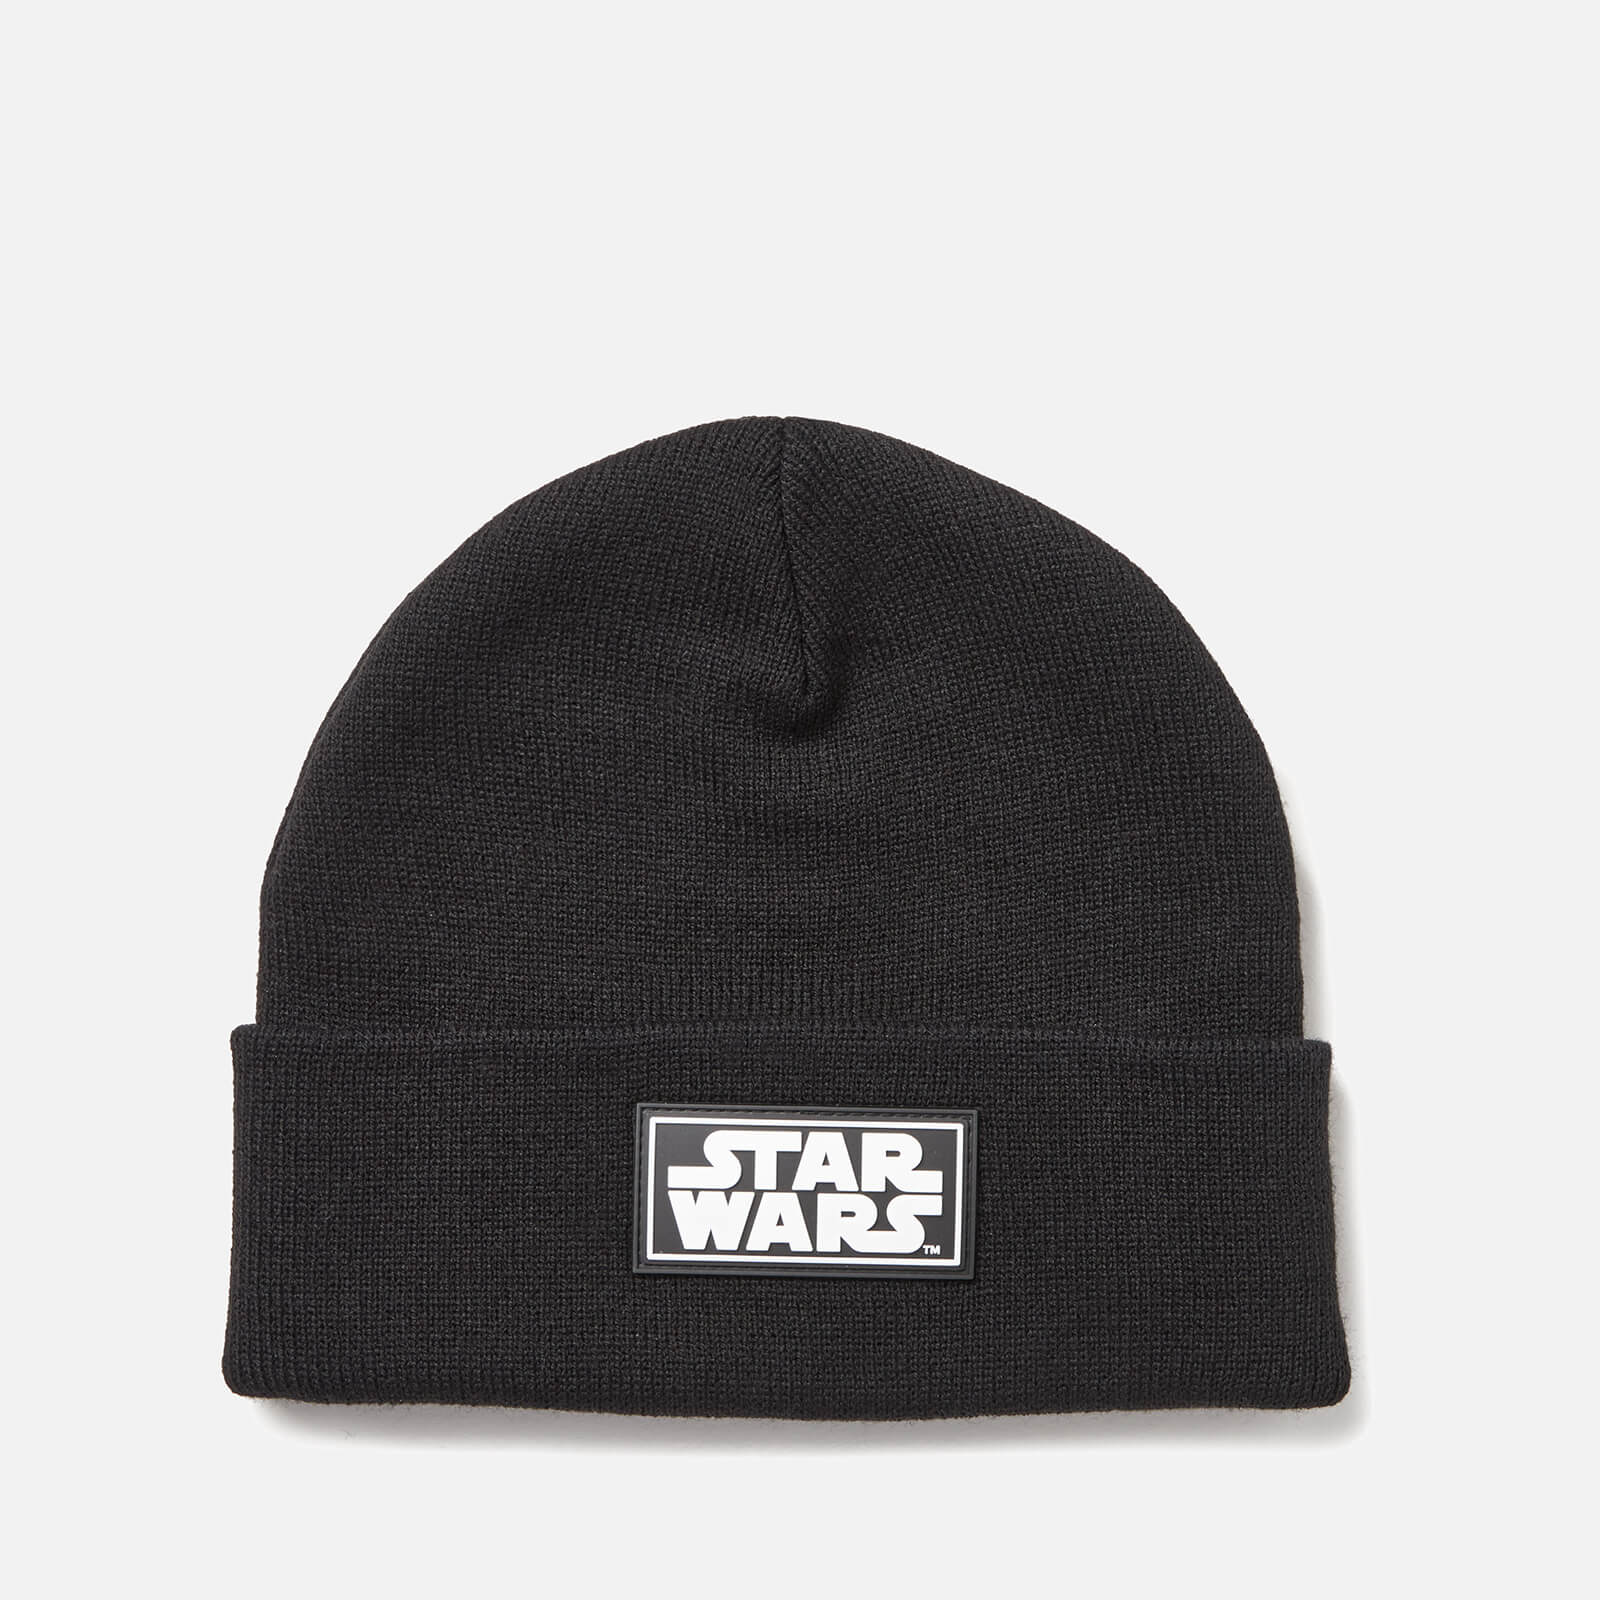 Star Wars Beanie Hat - Black Merchandise